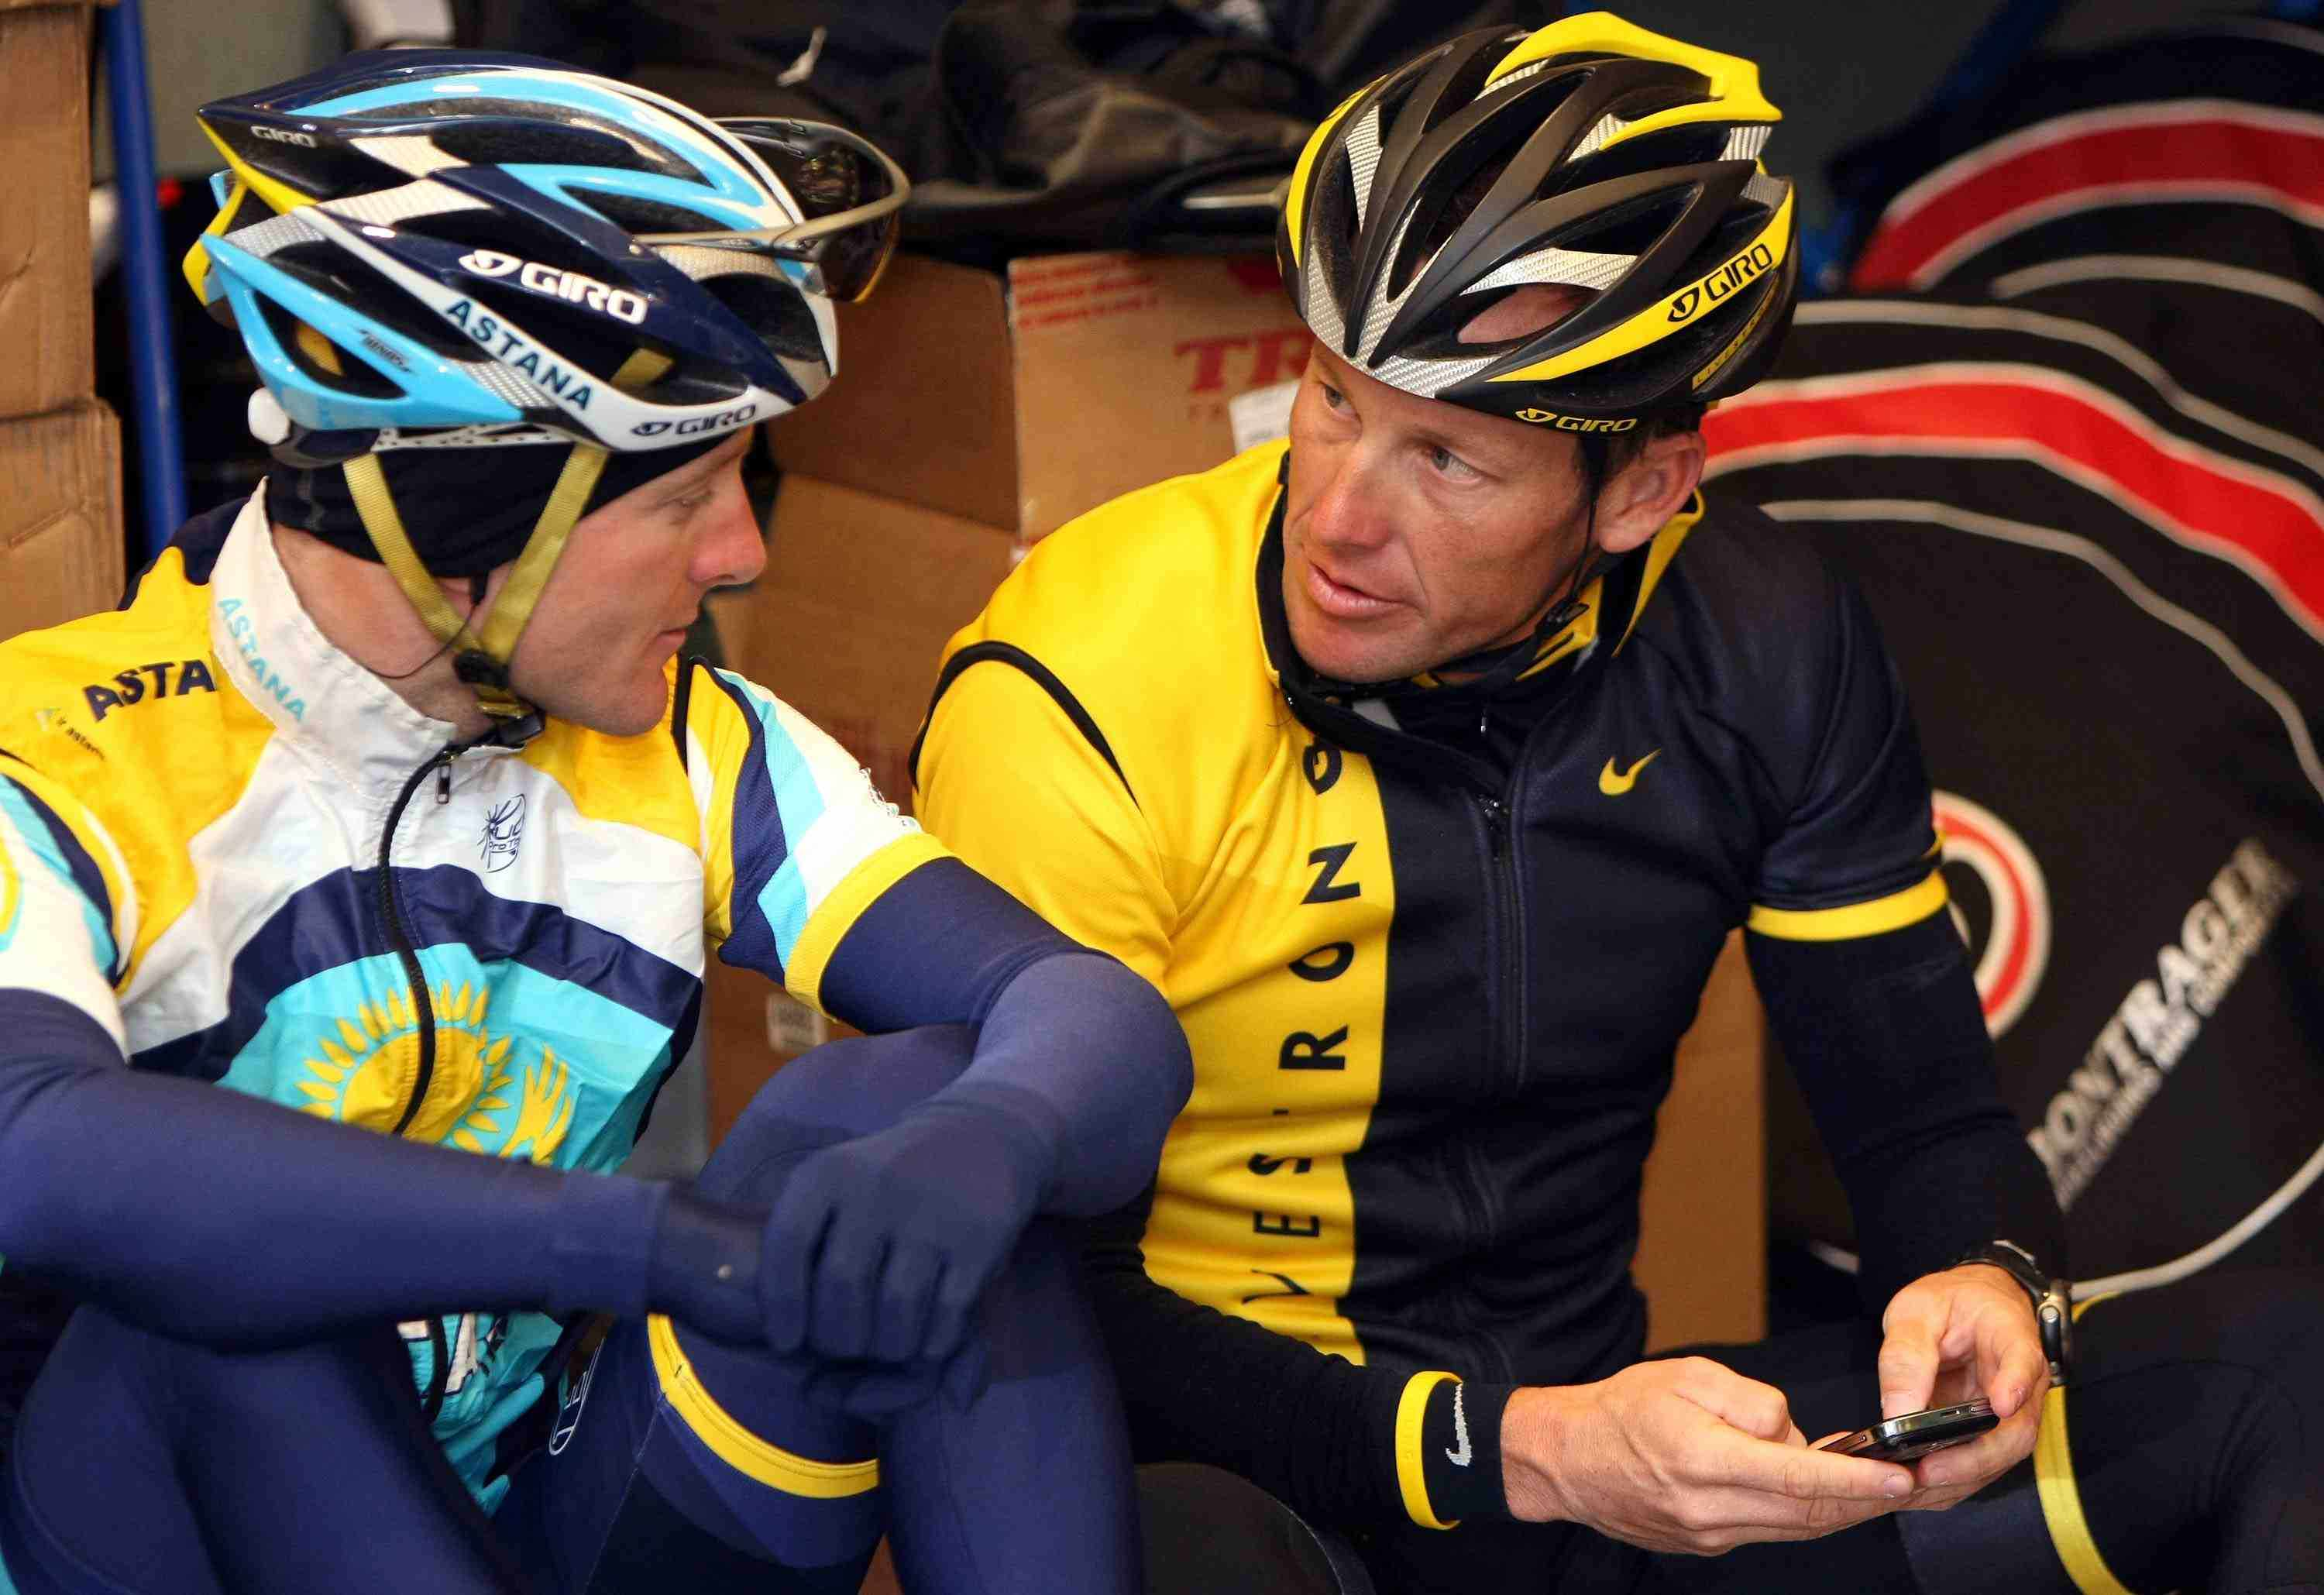 Astana teammates Levi Leipheimer and Lance Armstrong prepare for their training ride in Santa Rosa, CA February 4, 2009.